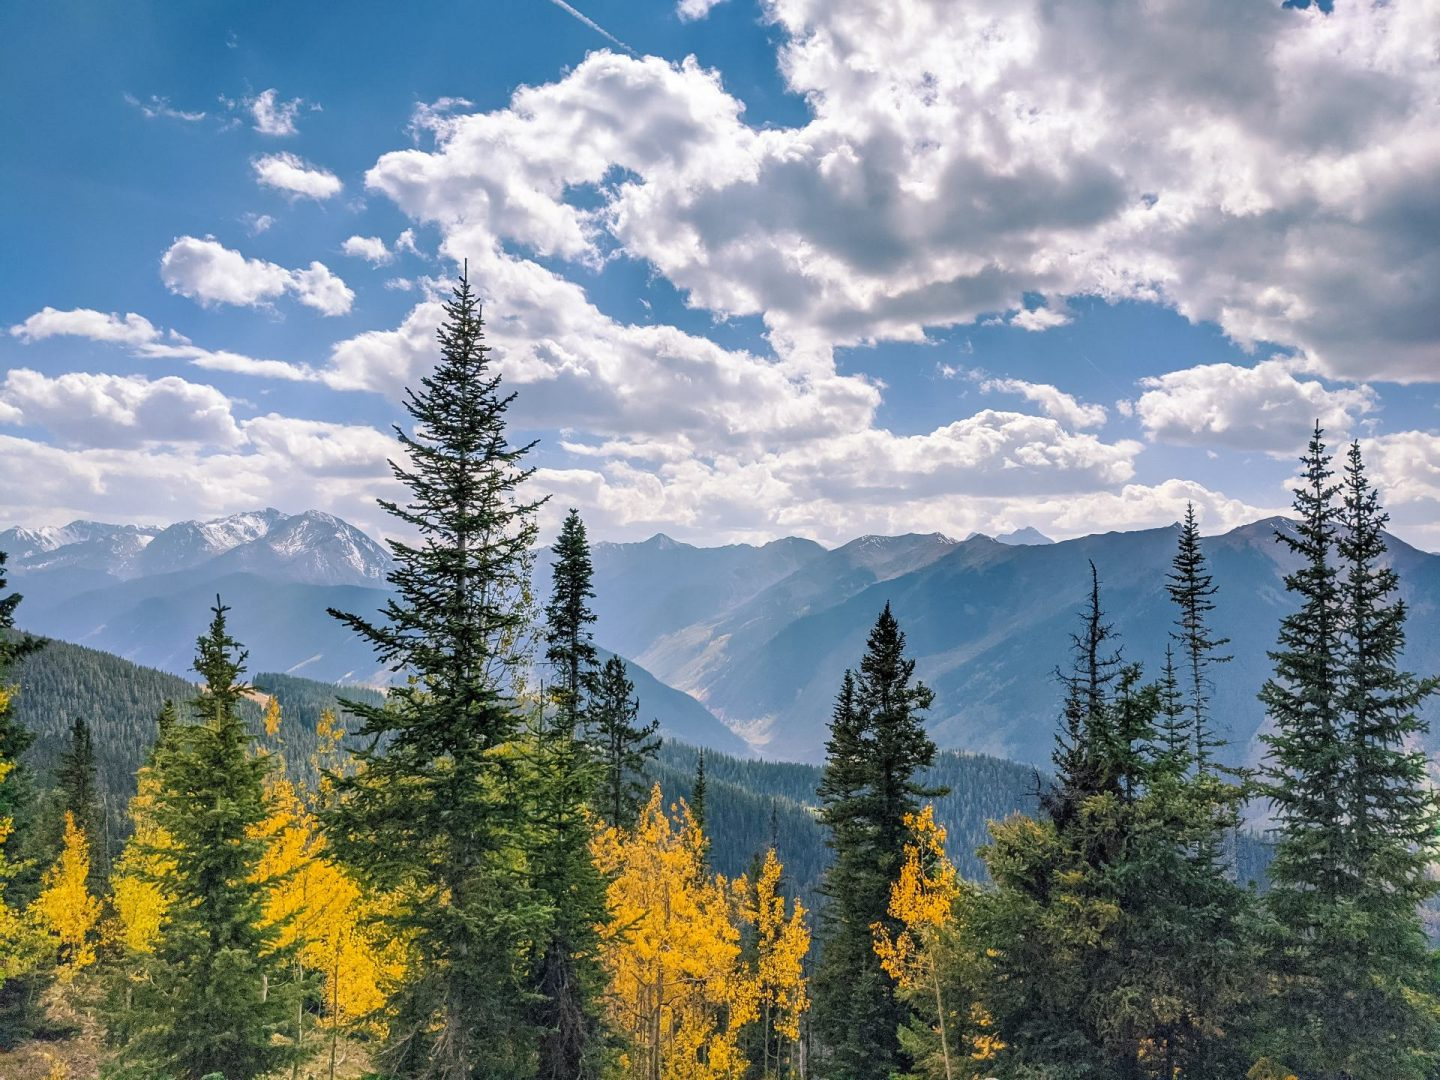 Colorful trees and mountain views along the road trip route